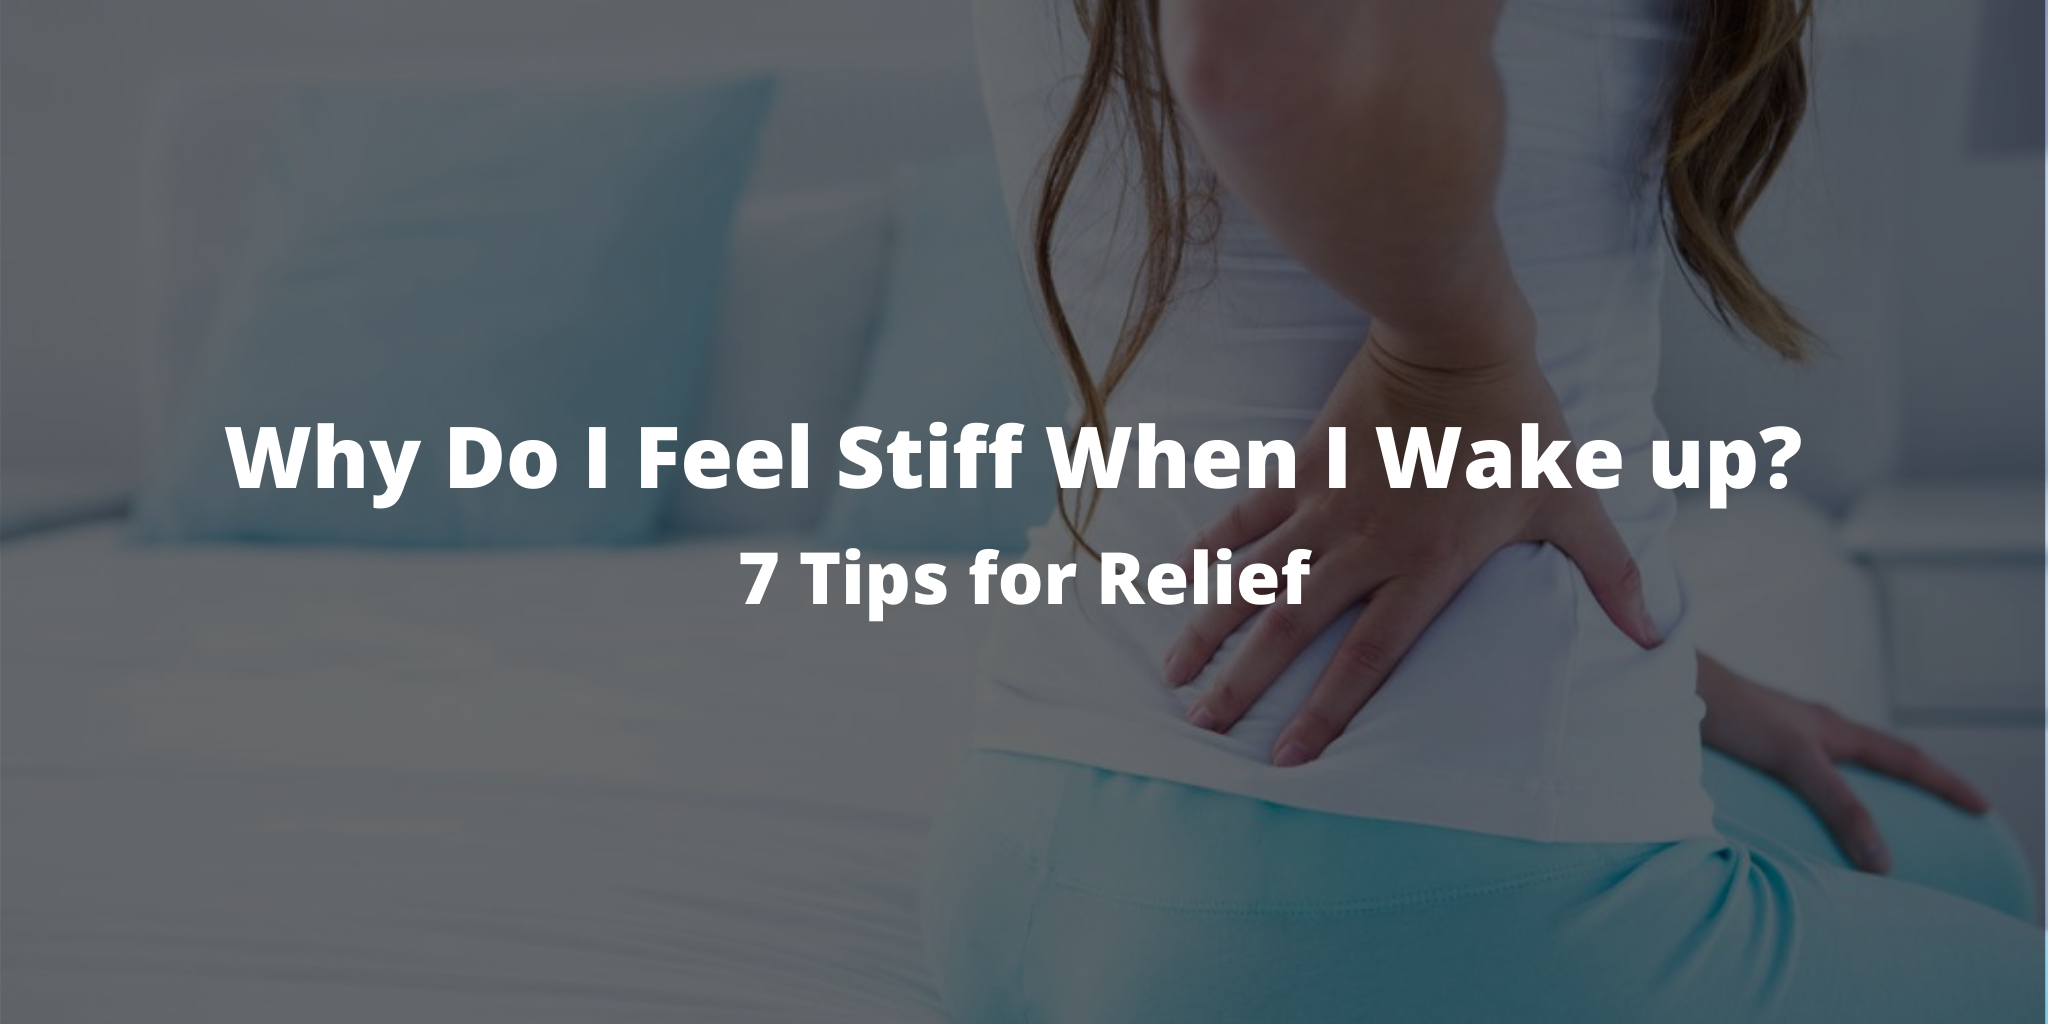 Why Do I Feel Stiff When I Wake up? 7 Tips for Relief